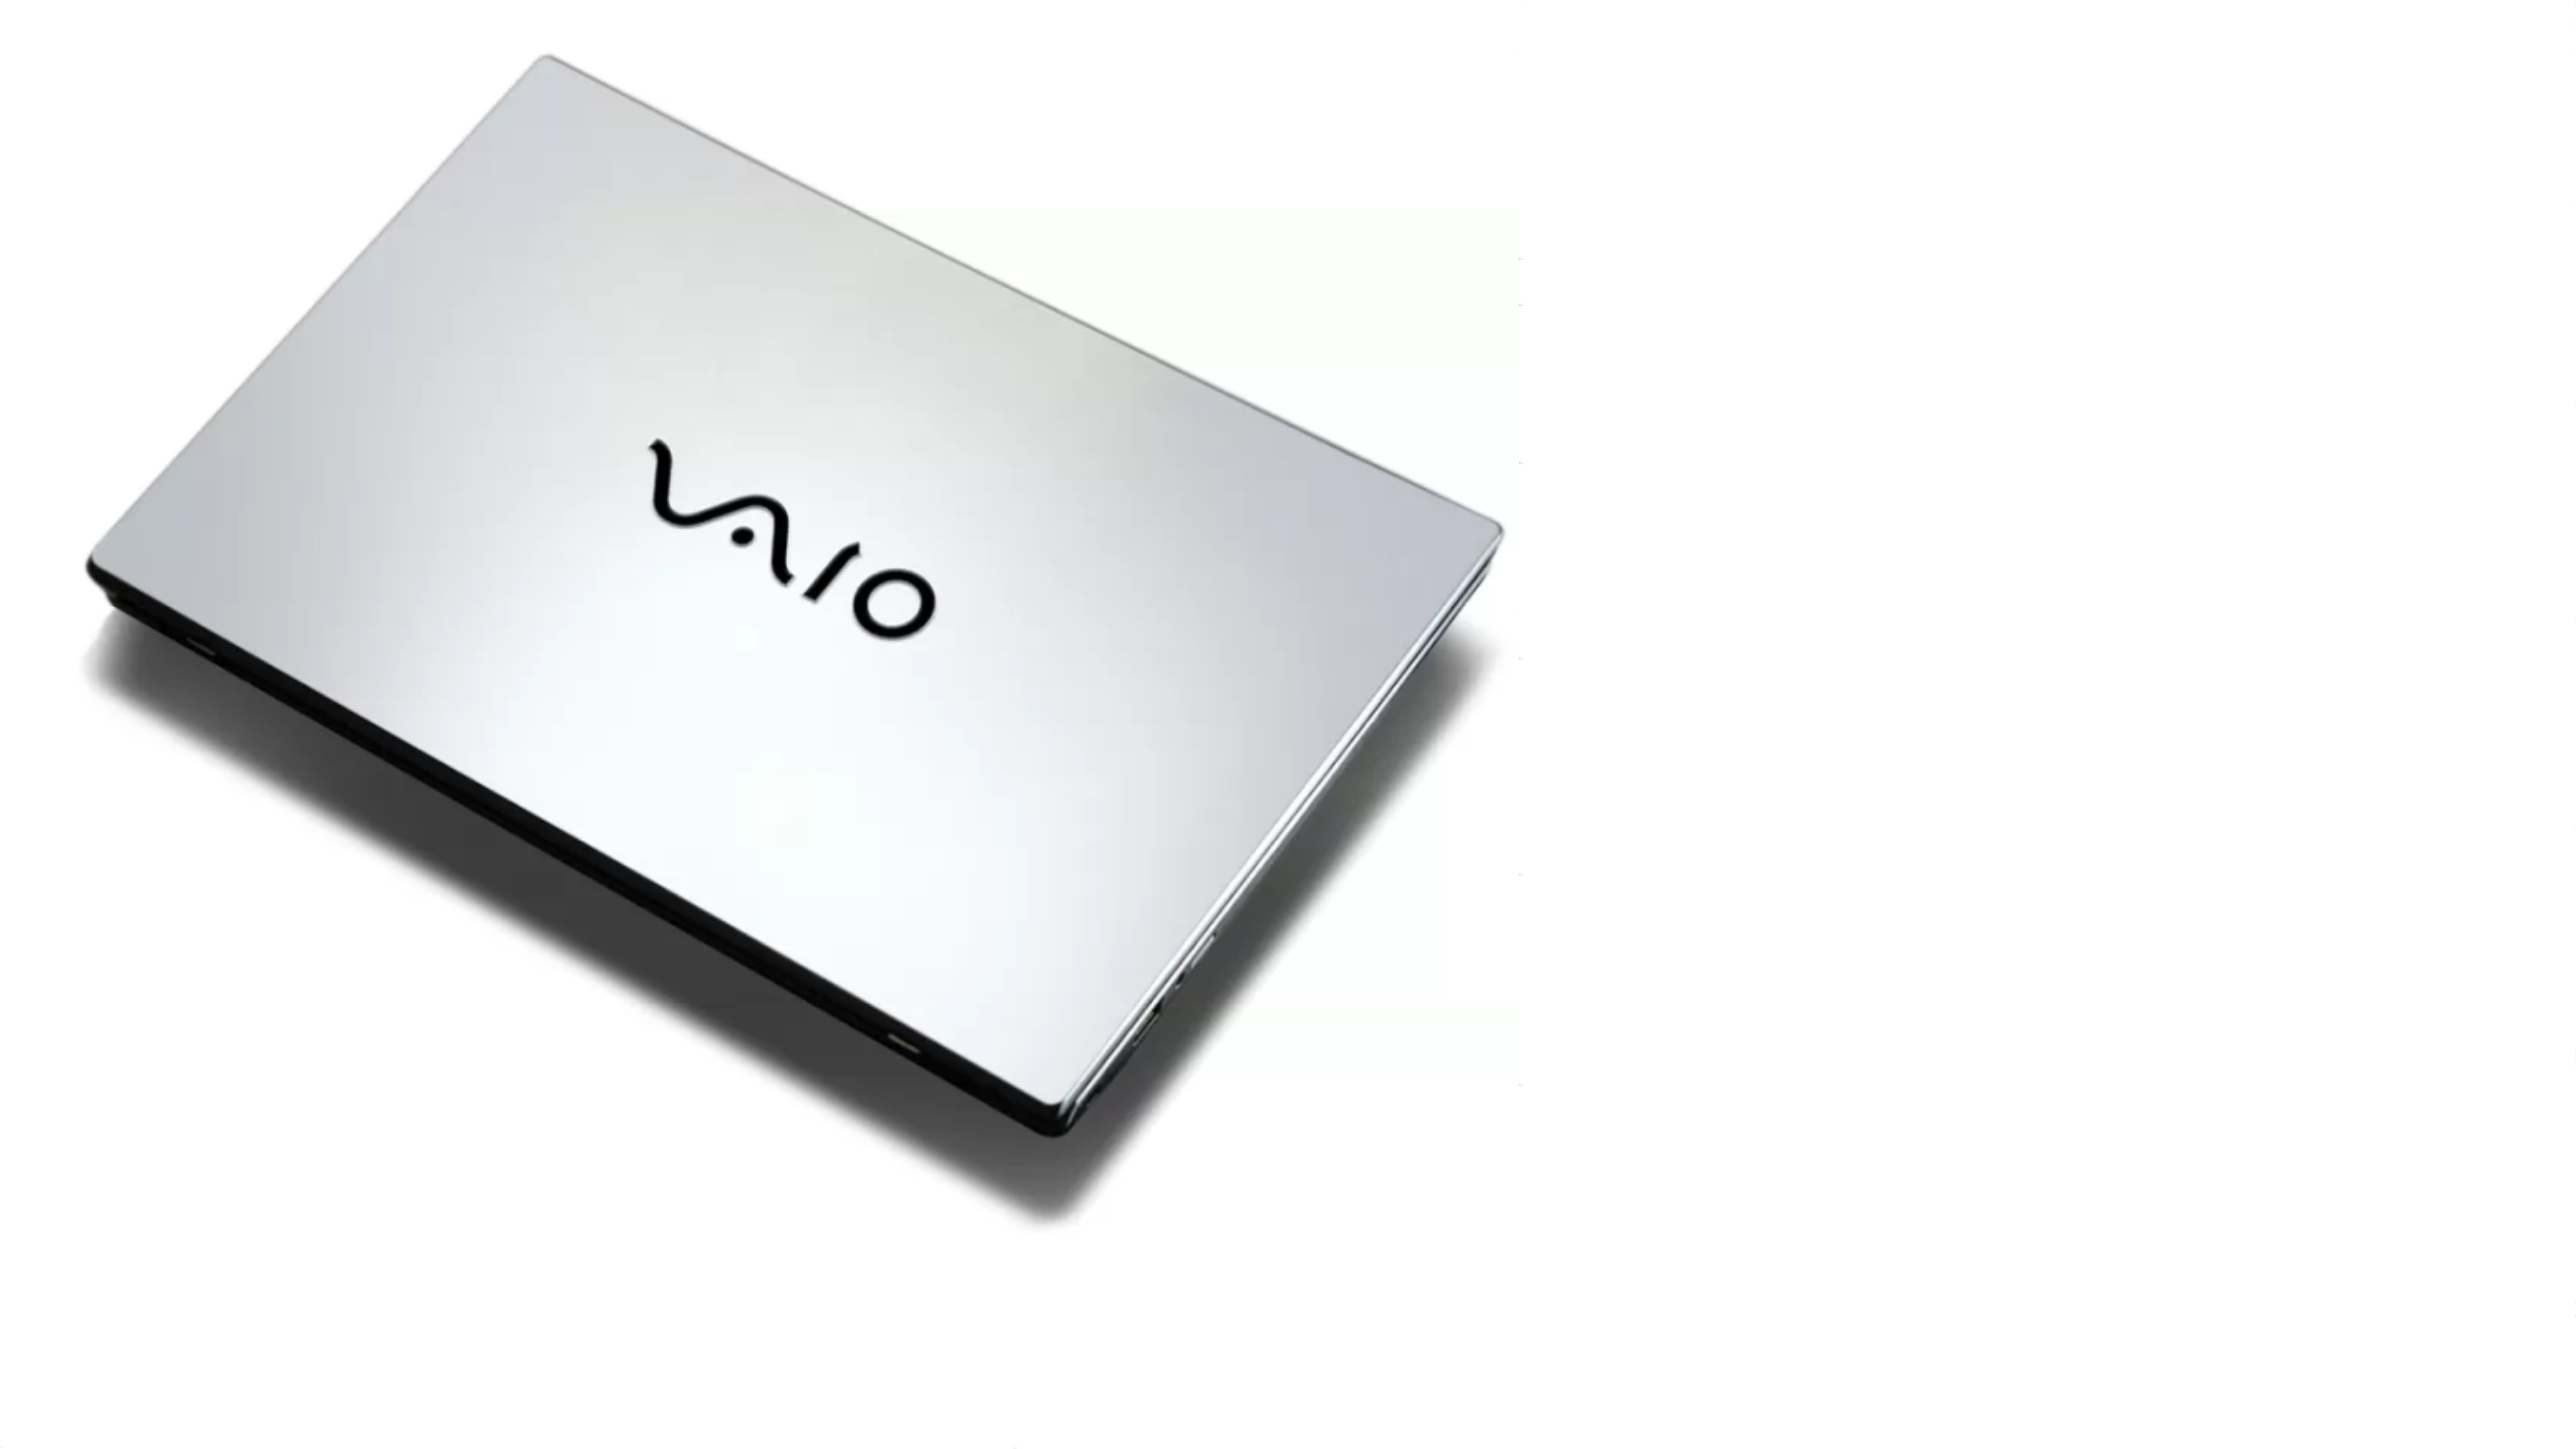 Vaio E15 ultrabook price in India, specifications and launch date